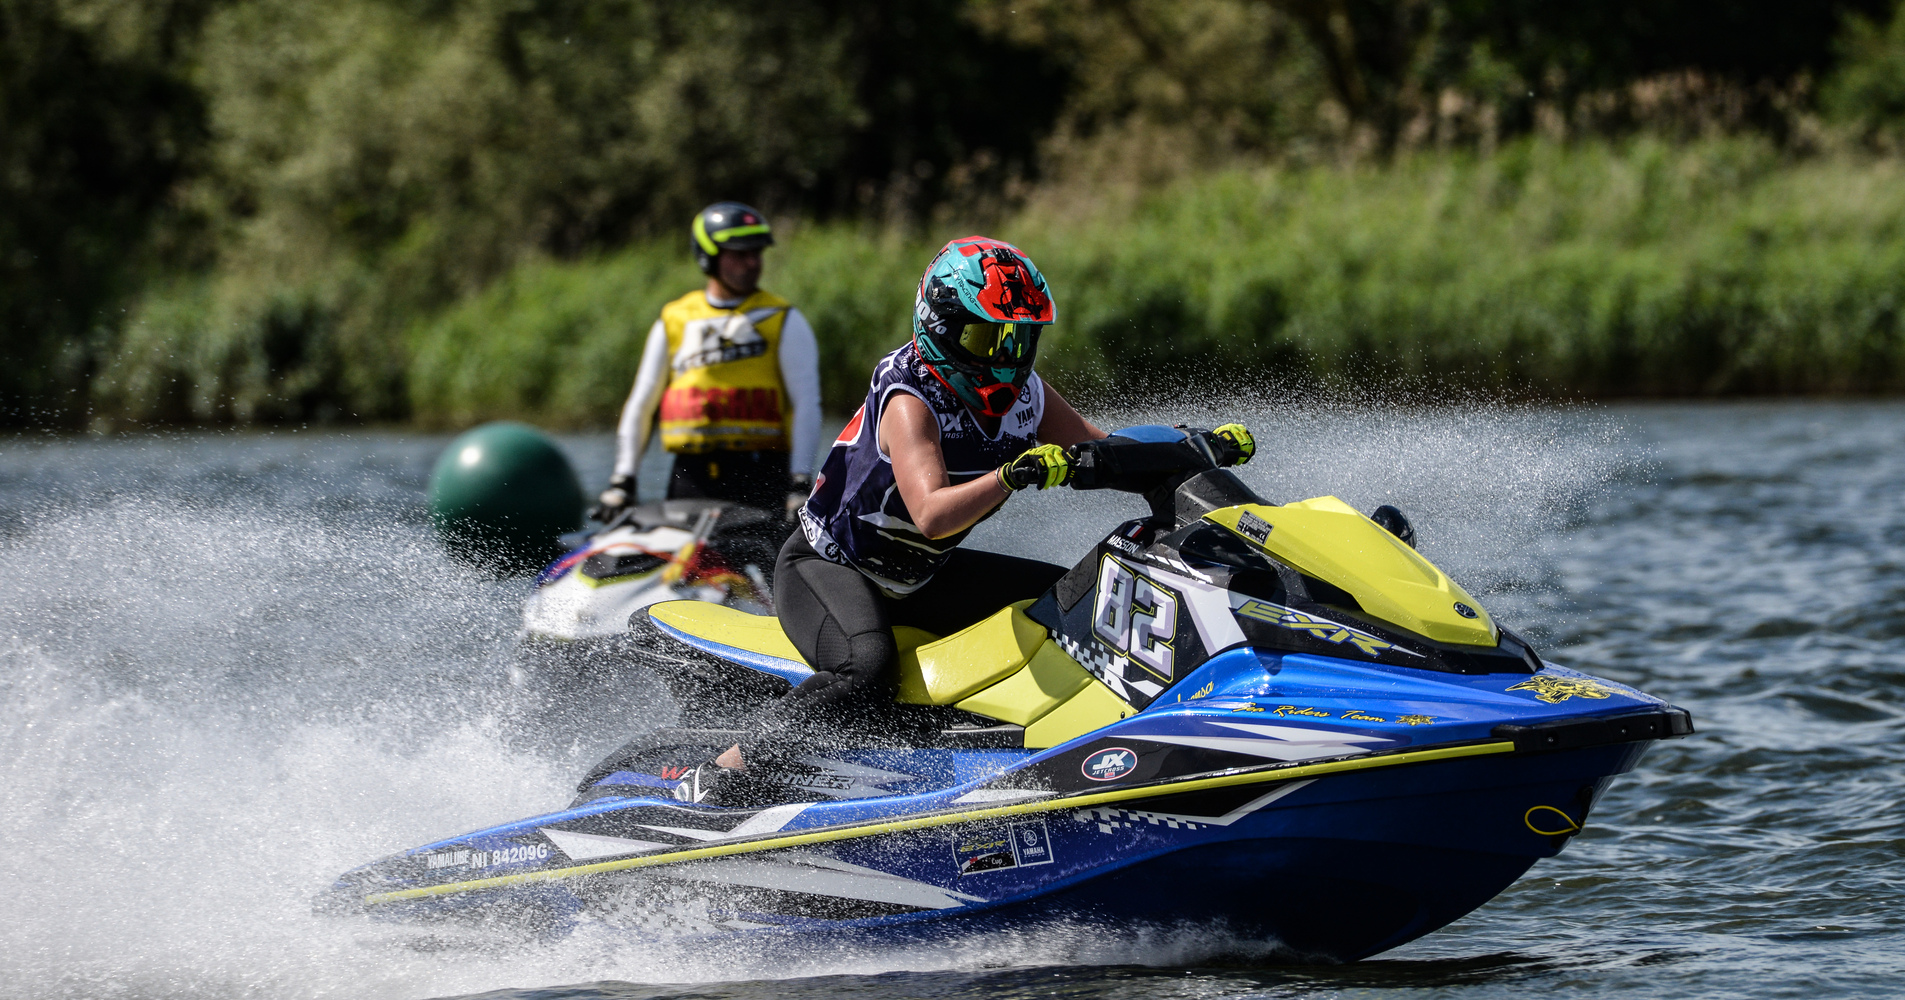 Lorensa Masson is pushing hard to reach the 2nd place in the 2019 Cup